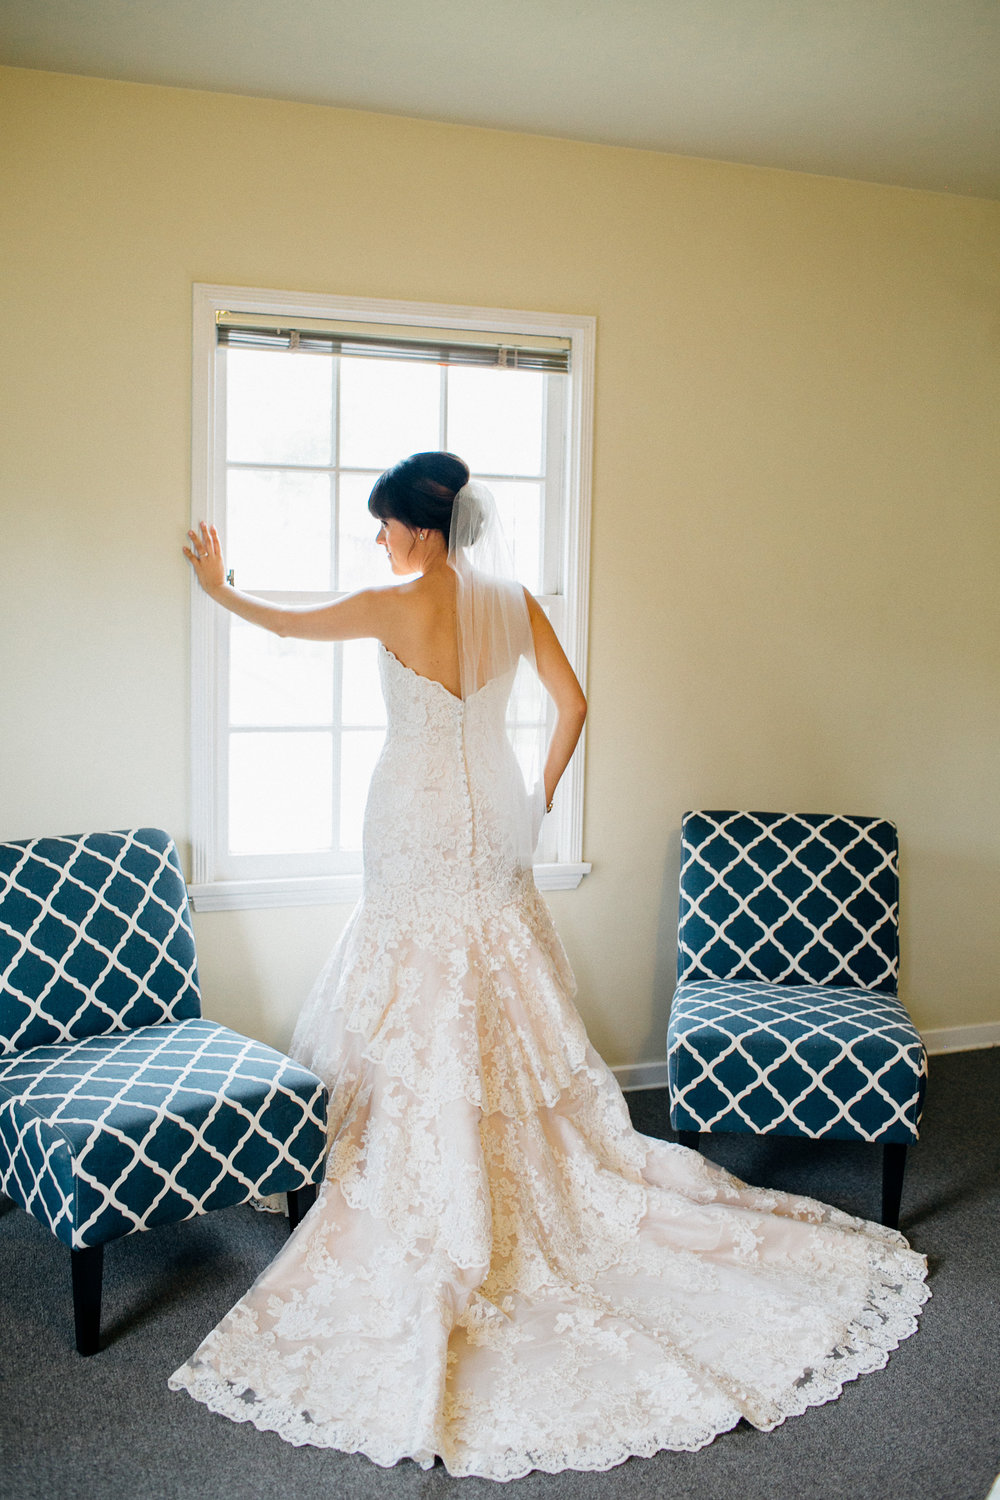 dc9ca-elegant-country-charm-ranch-wedding-gorgeous-lace-wedding-gown.jpg